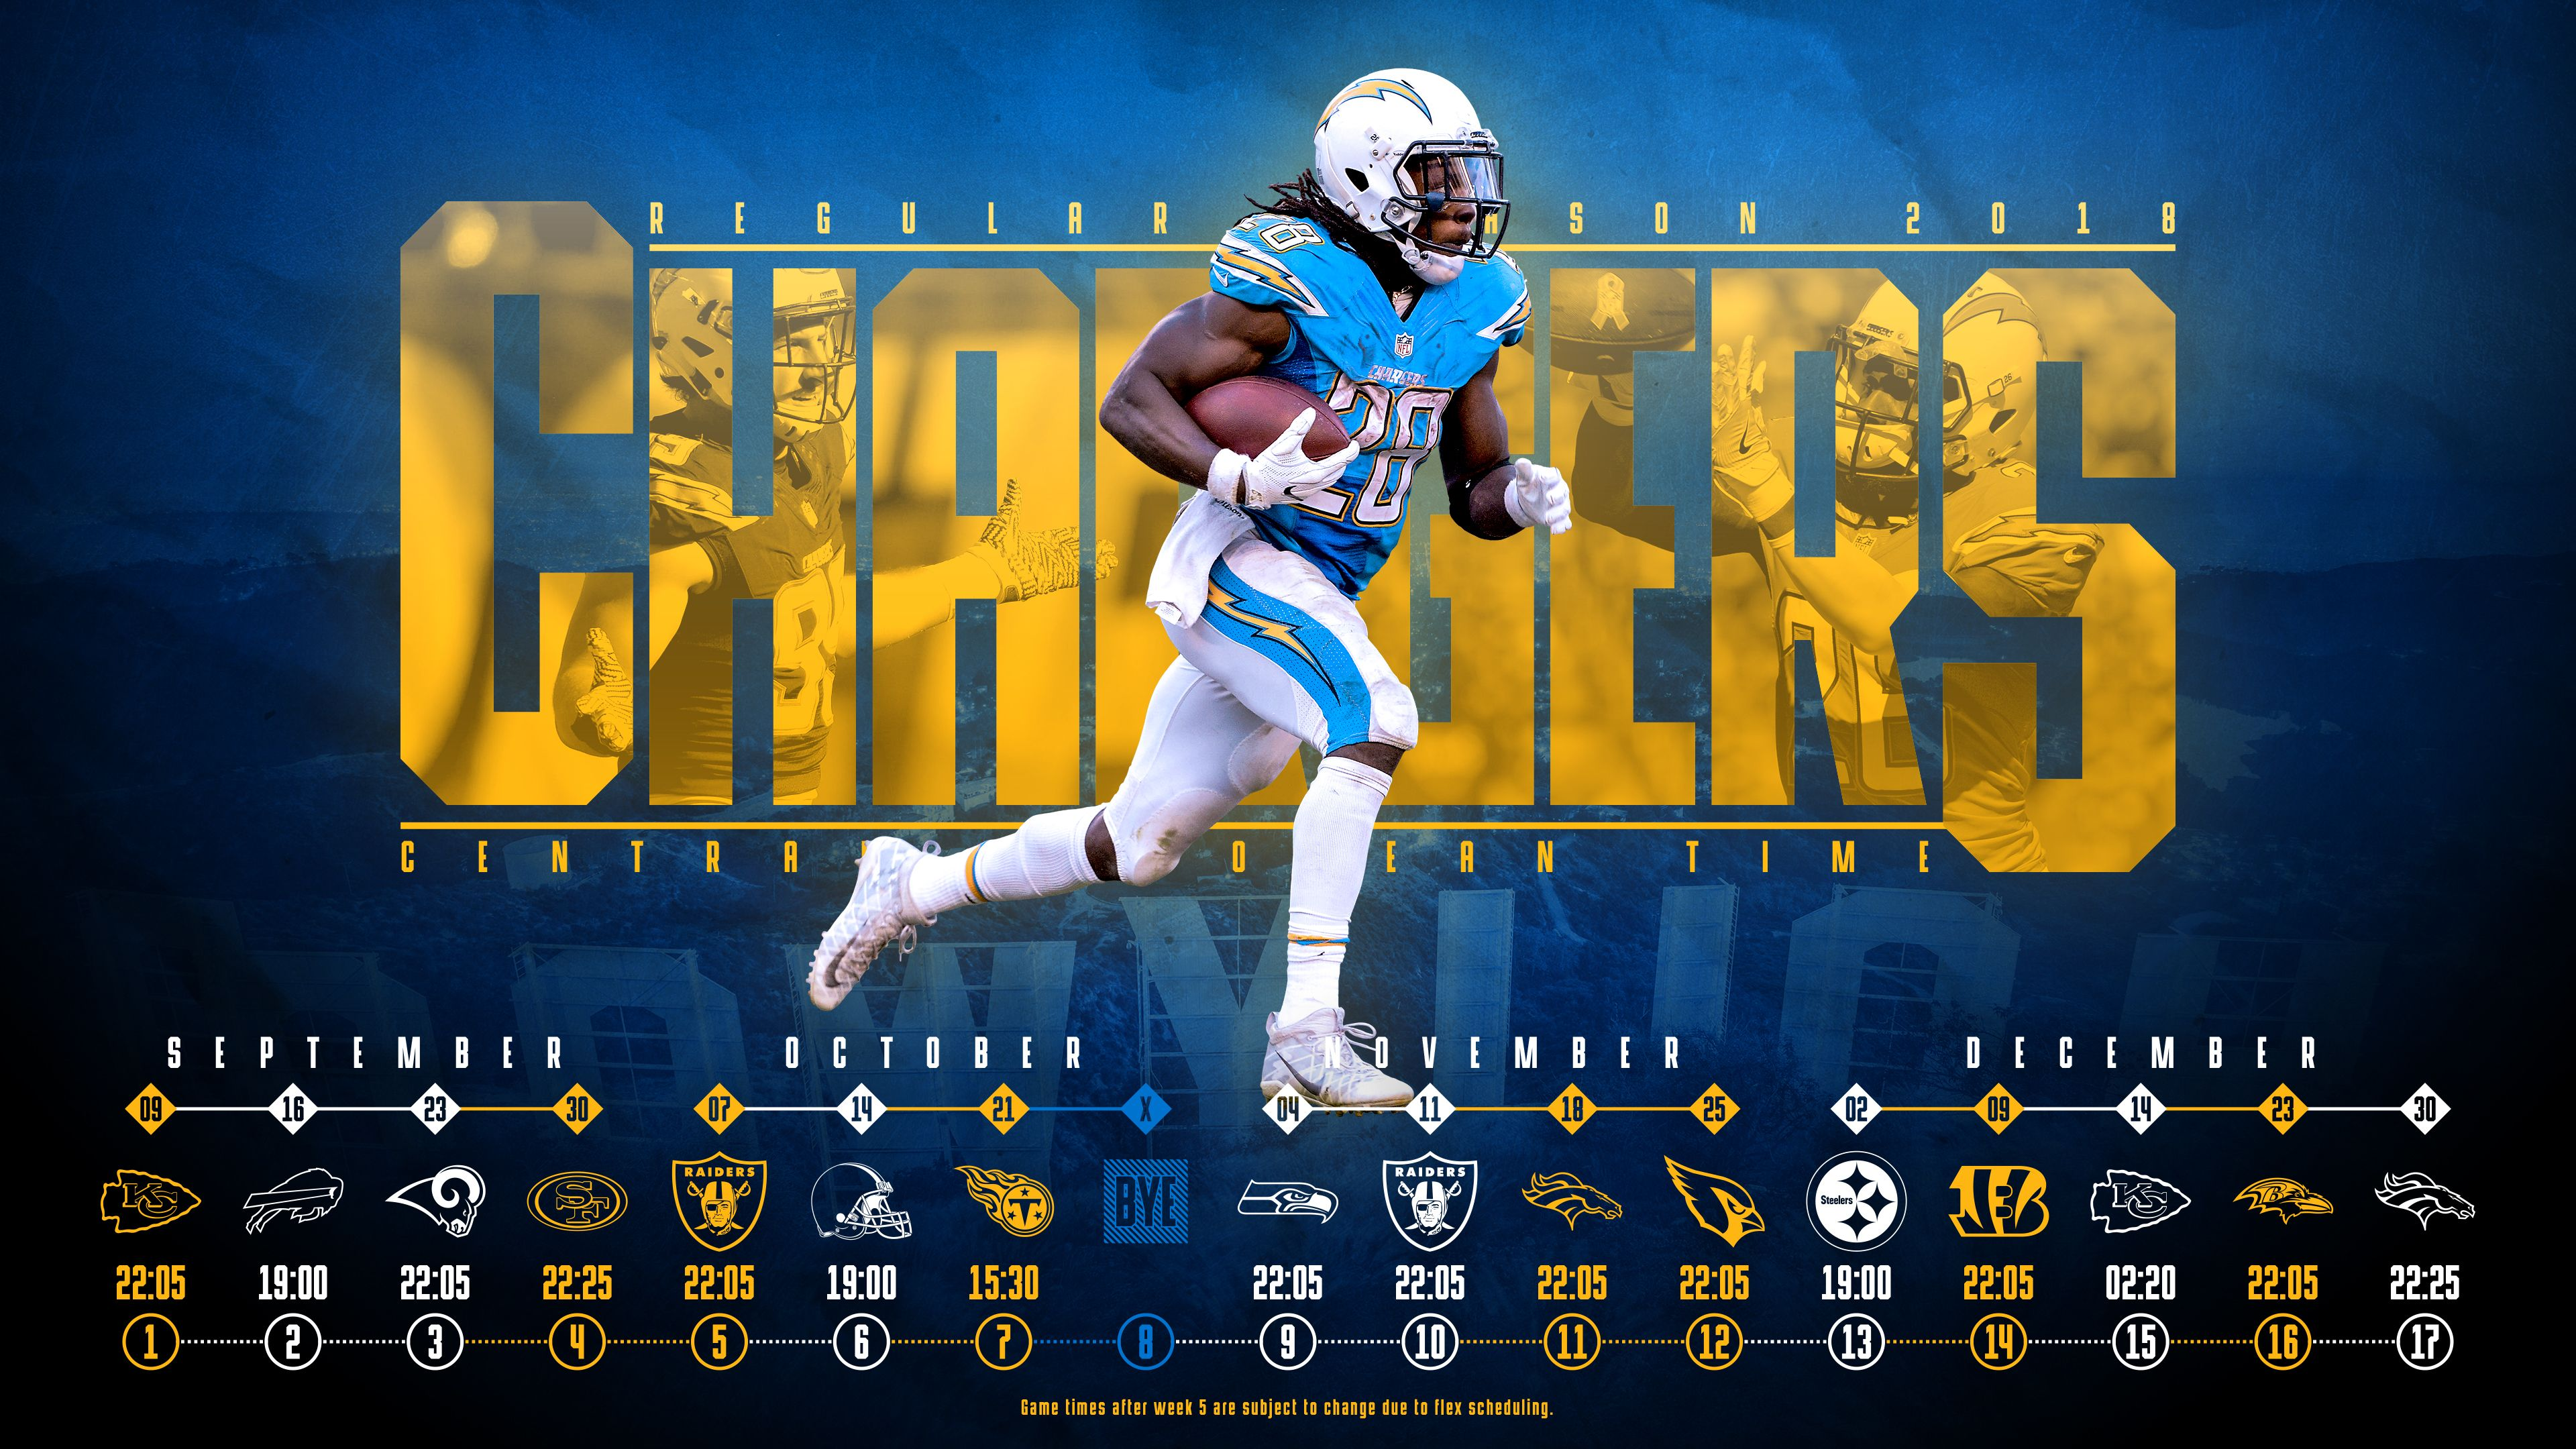 Schedule Wallpaper For The Los Angeles Chargers Regular Season 2018 Central European Time Made By Tobler Gergo Tge Los Angeles Chargers Chargers Los Angeles